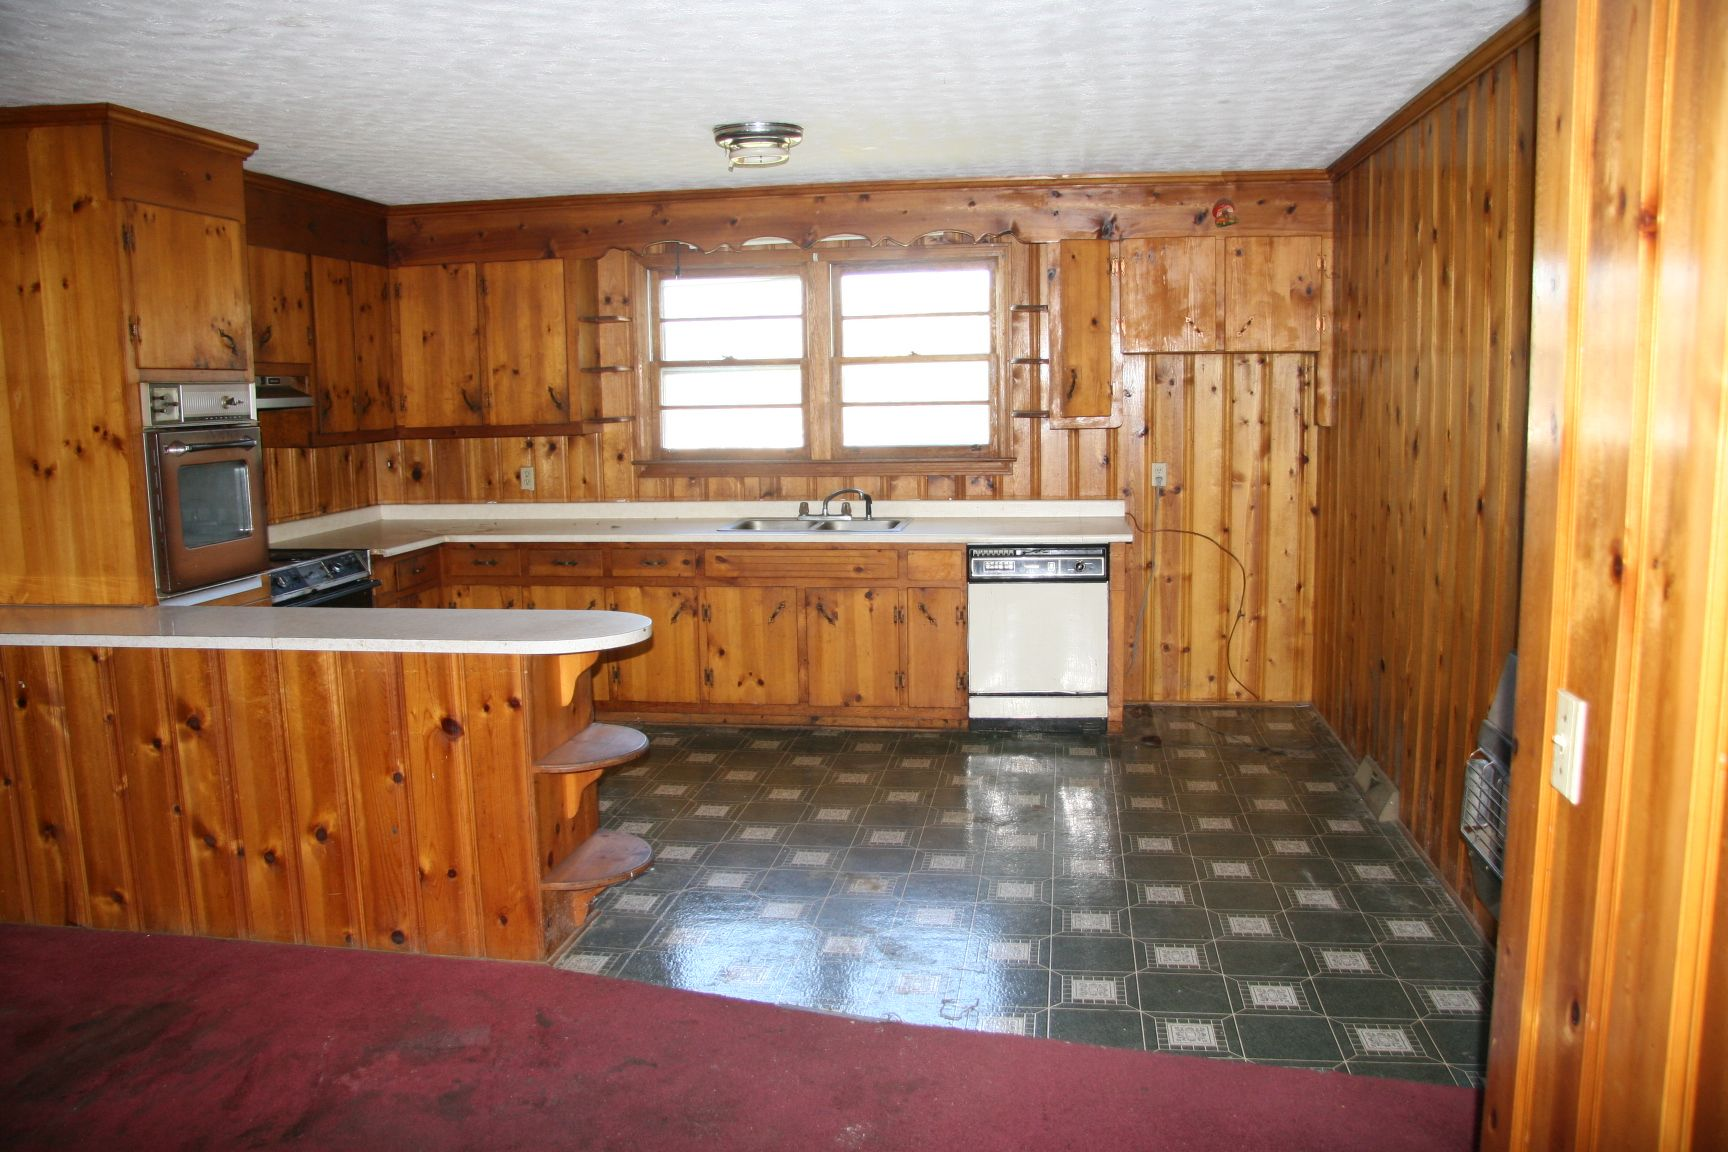 Knotty Pine Kitchens Auction Brick Ranch In North Greenville Kitchen With Knotty Pine Knotty Pine Cabinets Knotty Pine Kitchen Pine Cabinets